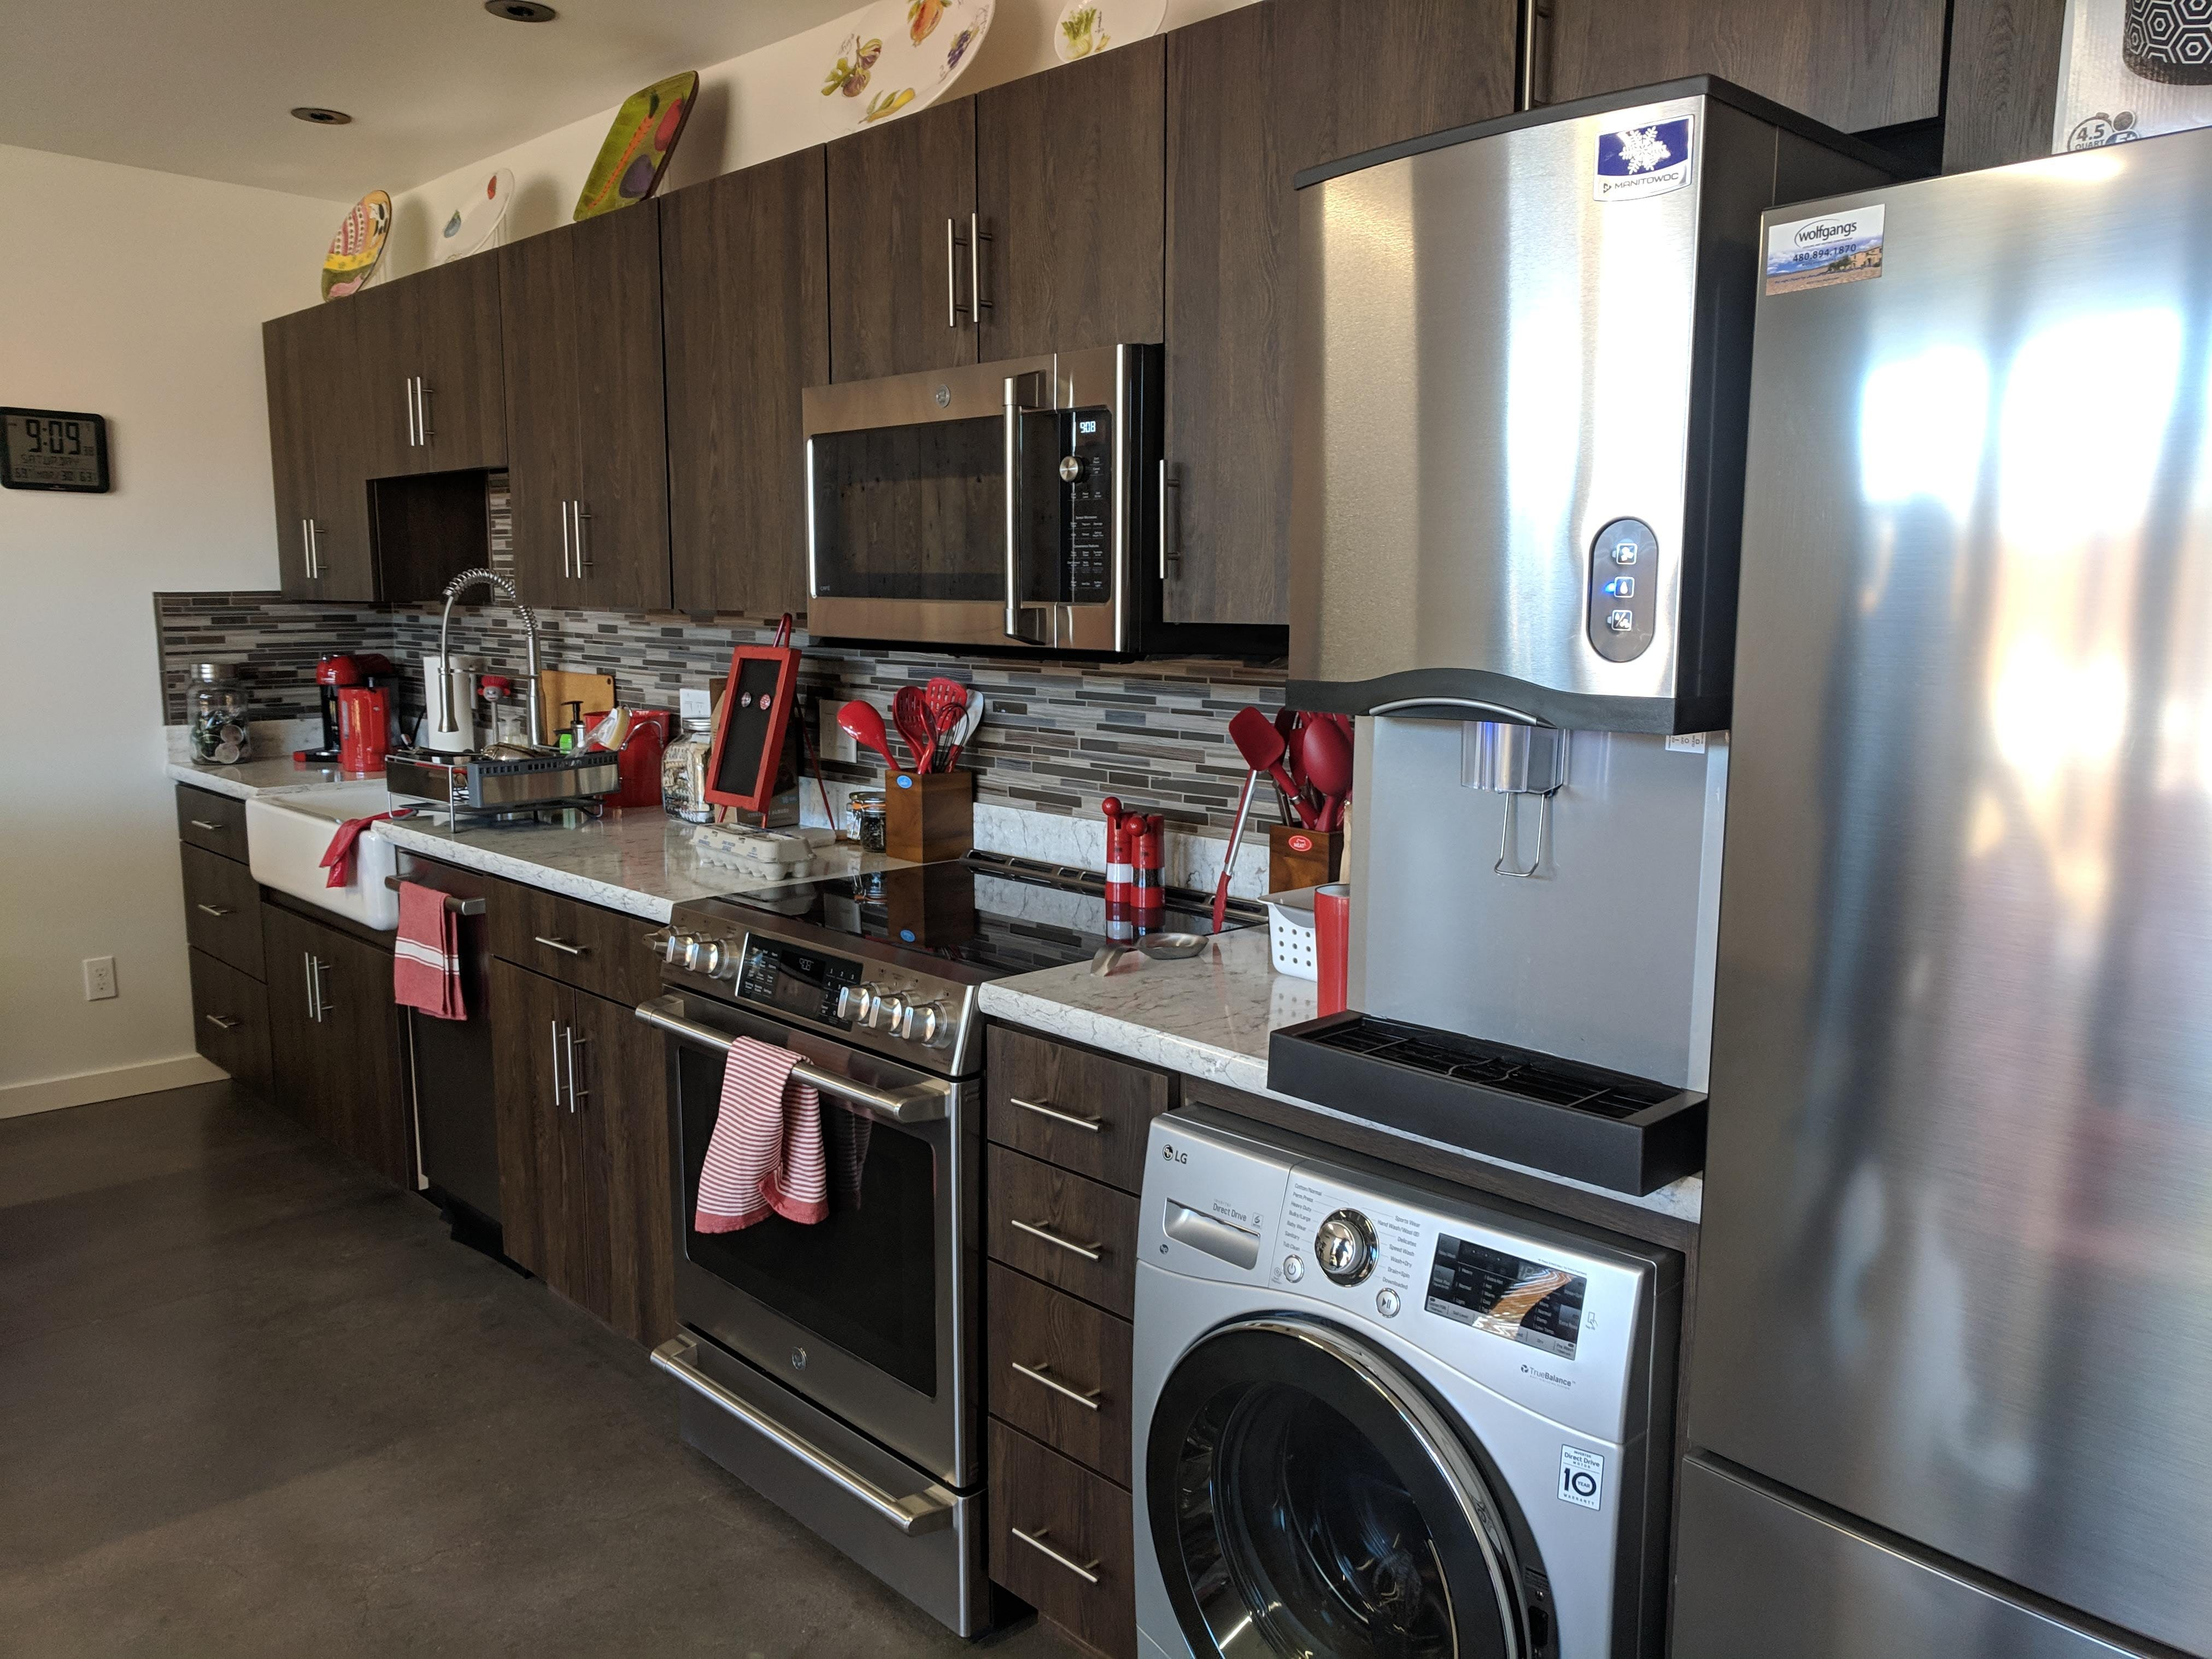 The kitchen features every luxury of any home, including a farmhouse sink and stainless appliances. But, it also doubles as a laundry room, thanks to a single unit that washes and dries dirty farm clothes.